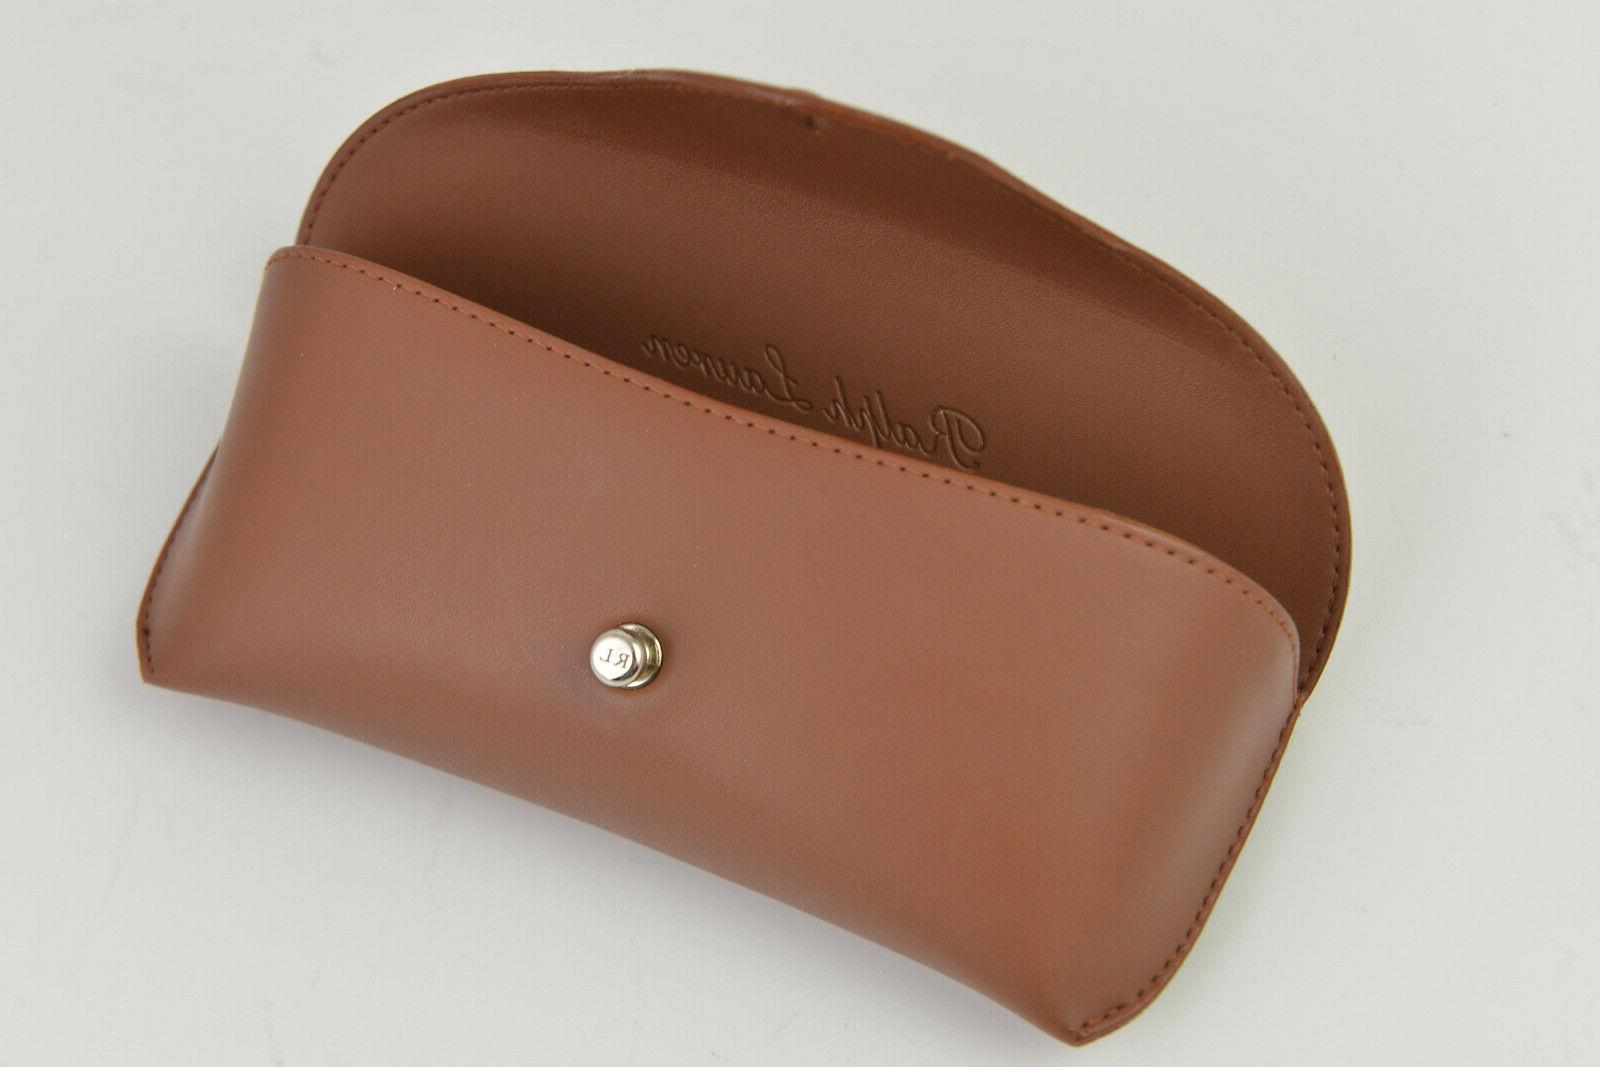 New Ralph Lauren / sunglasses case brown leather Italy